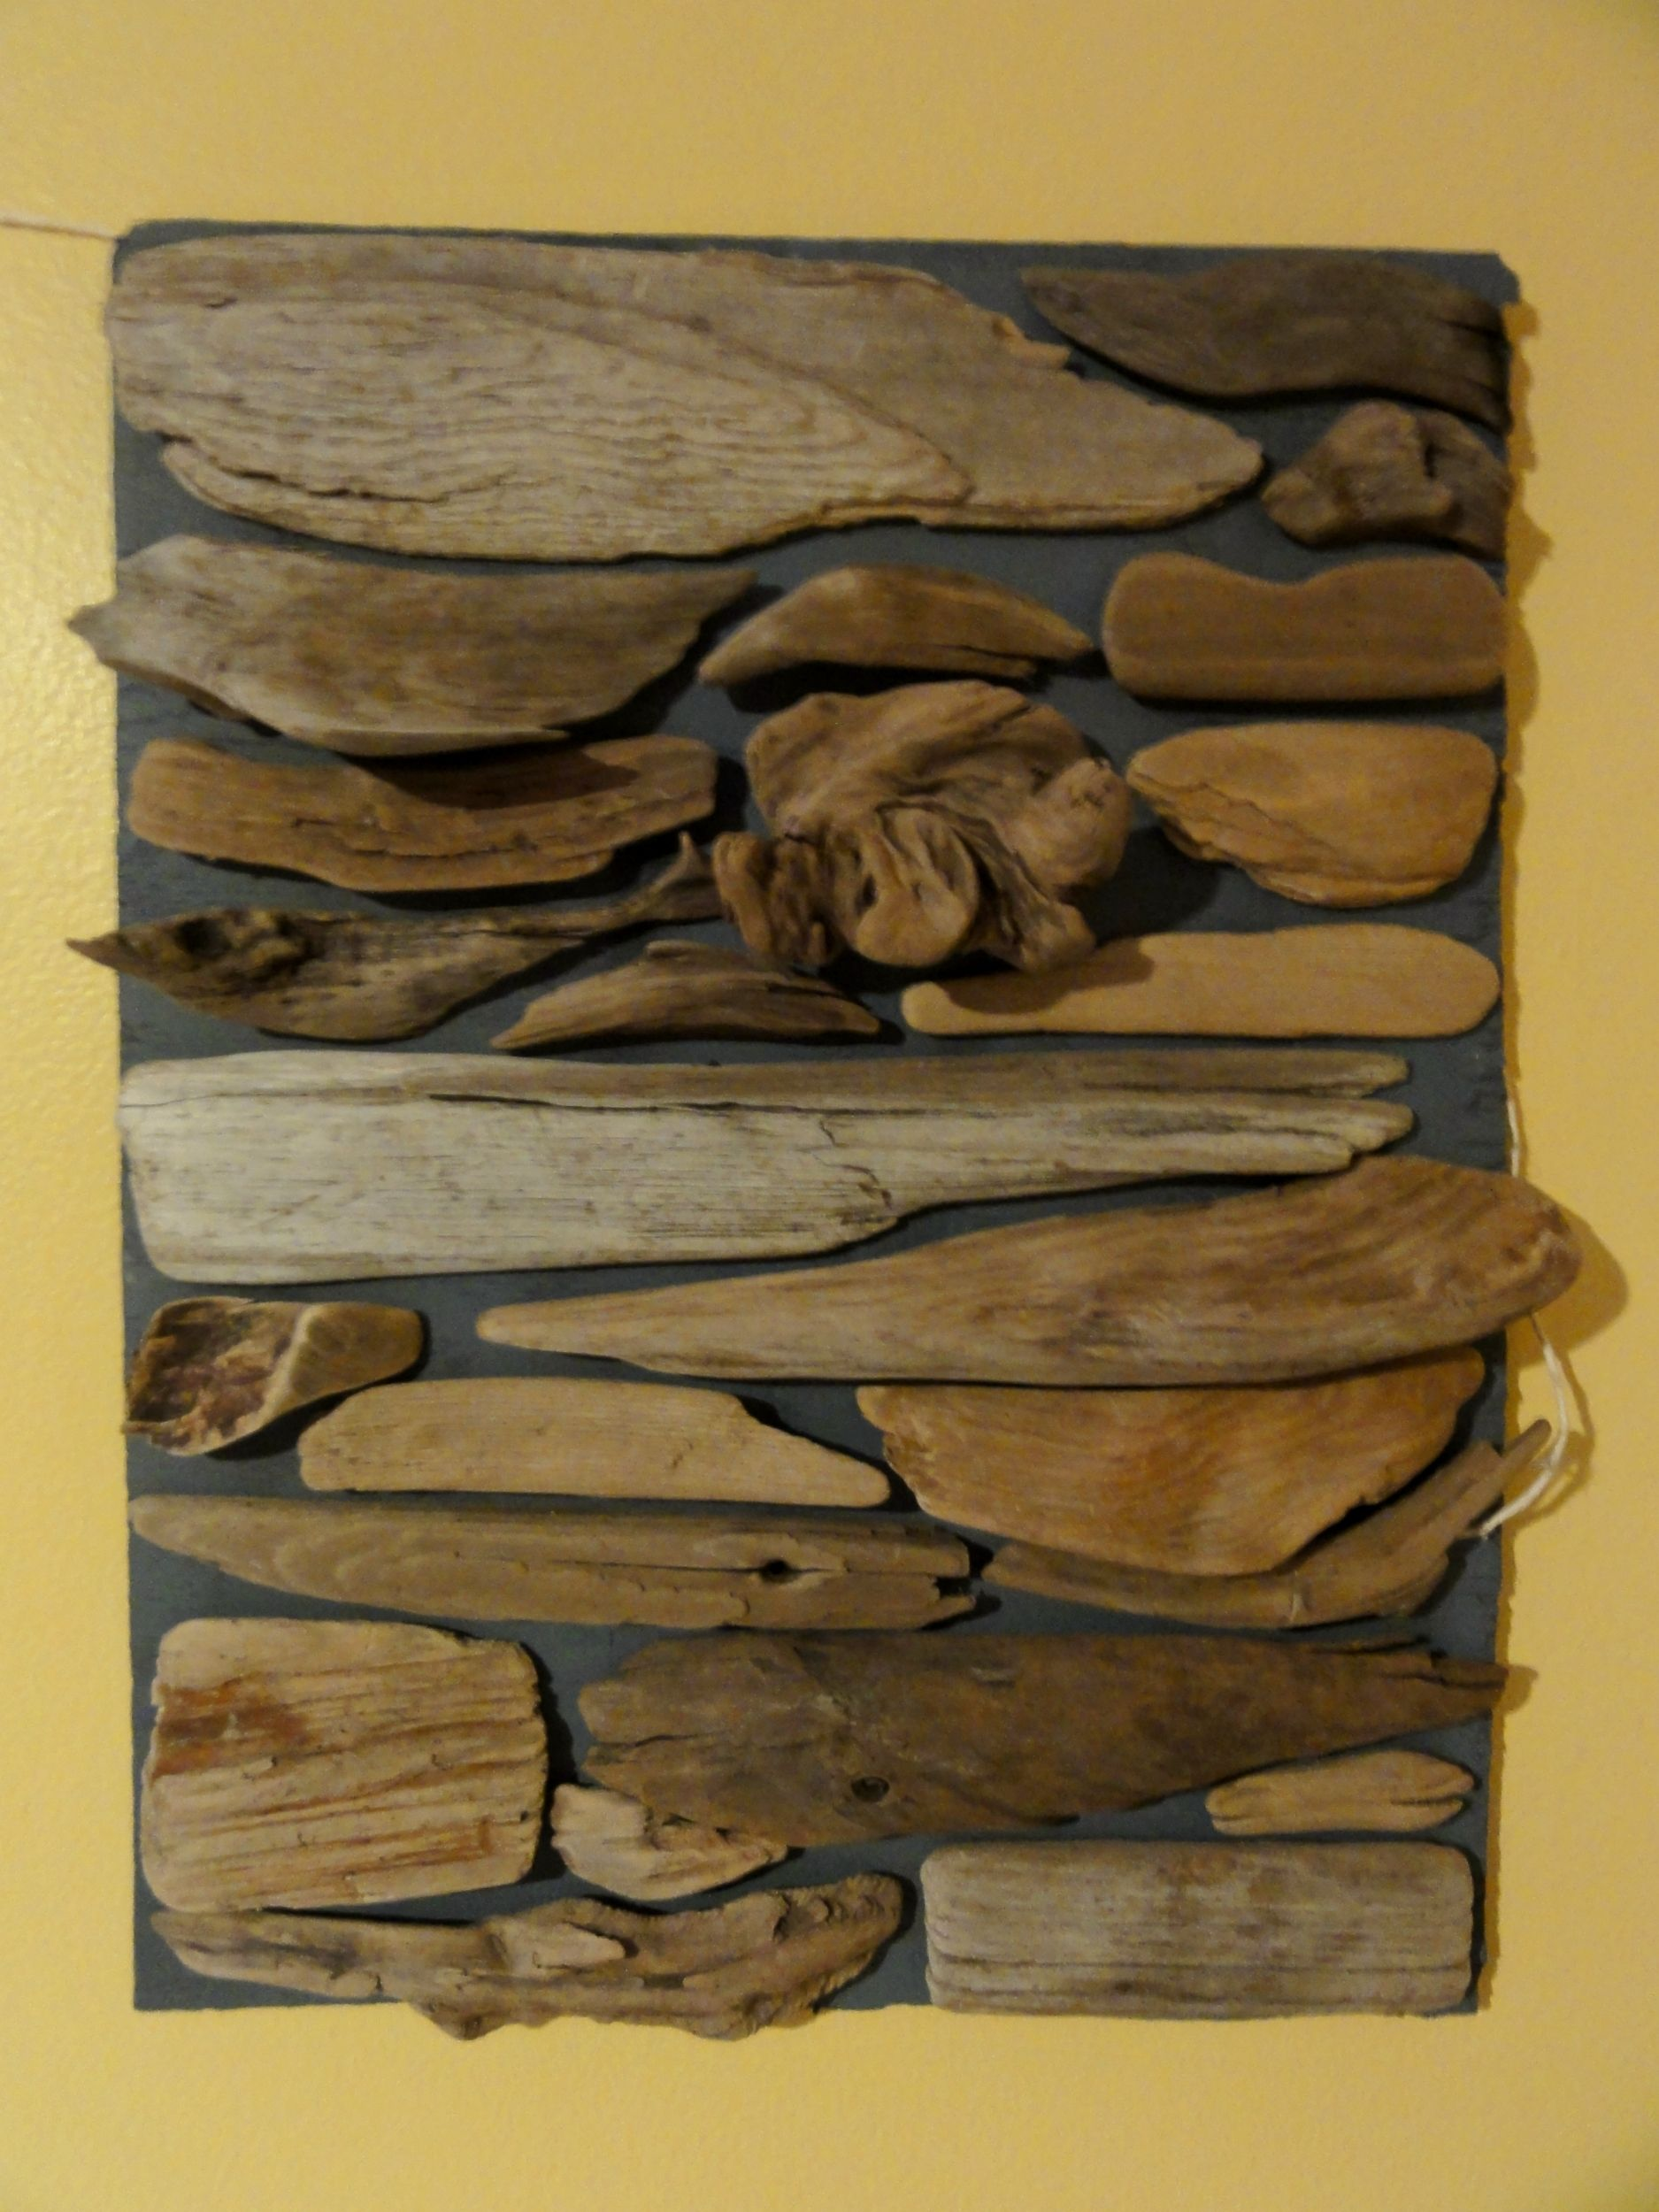 Diy driftwood wall art paint desired sized board with favored colors gather assorted pieces of driftwood and arrange to fit together glue wood on